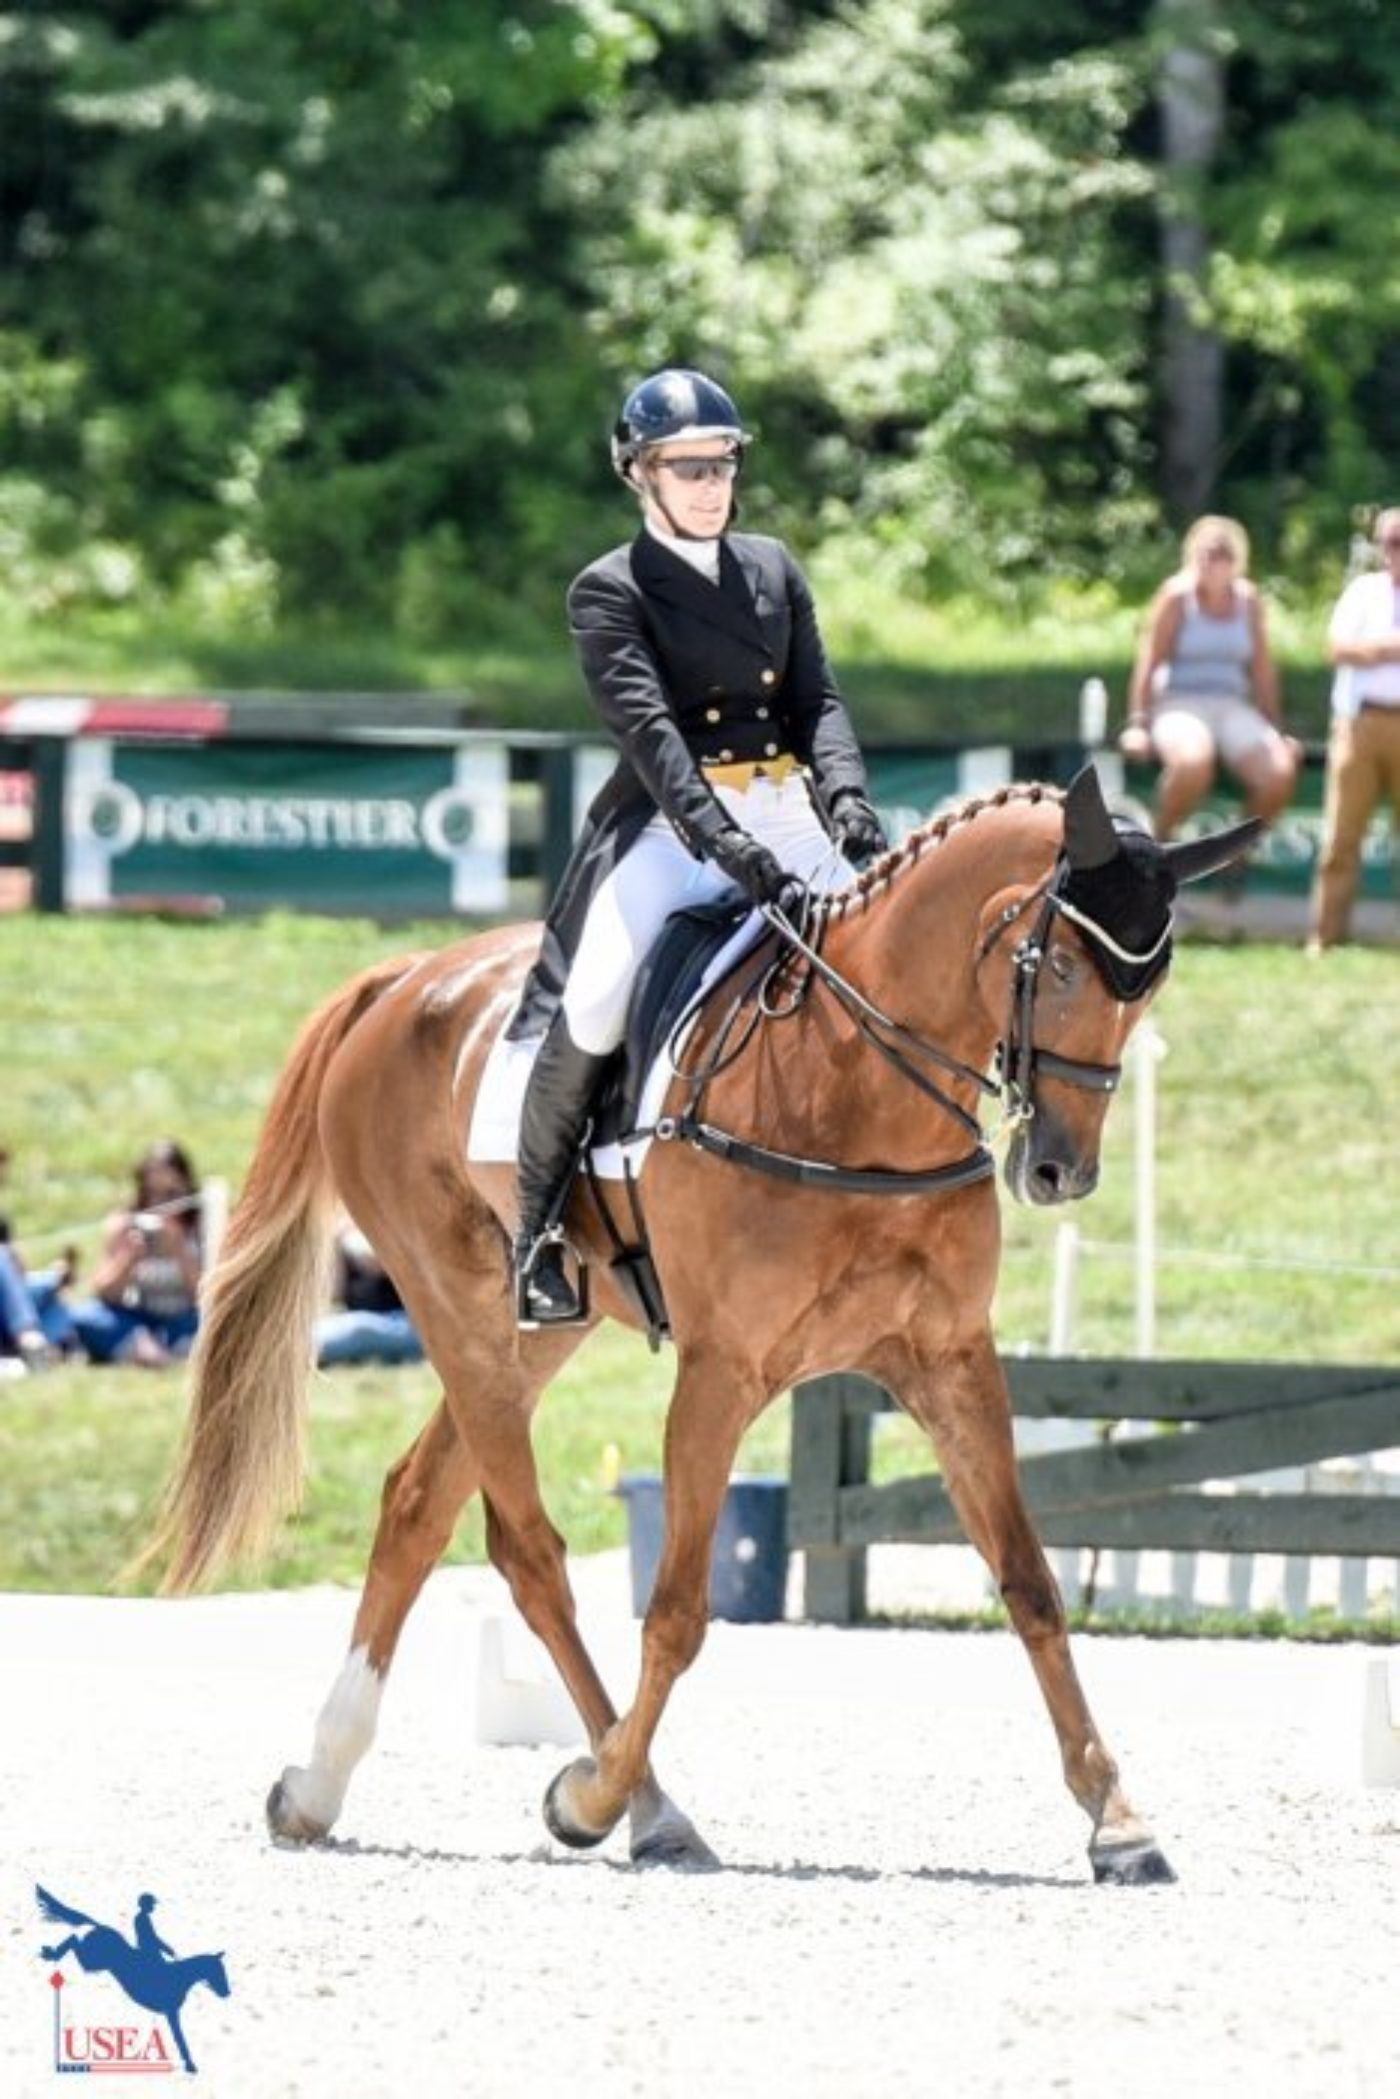 36thT - Lisa Marie Fergusson and Honor Me - 37.9